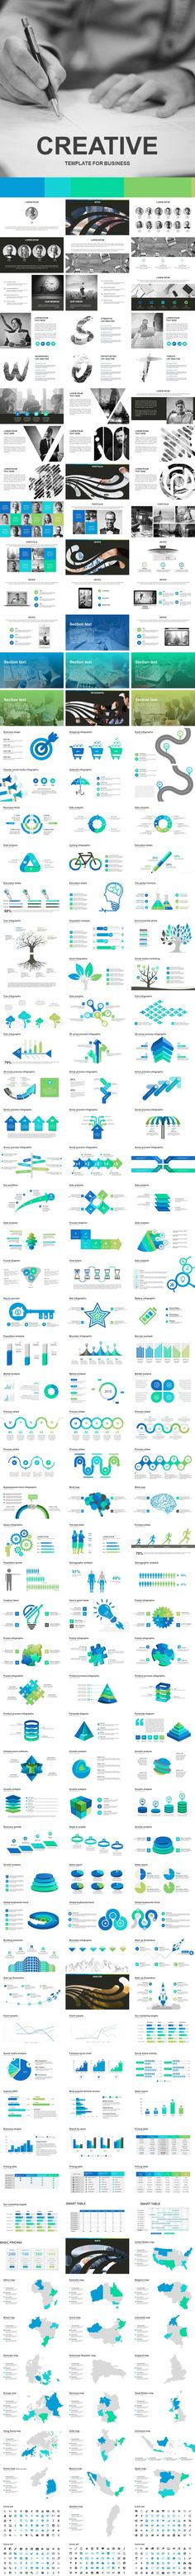 Creative Powerpoint Template — Powerpoint PPTX #enterprise #investor • Download ➝ https://graphicriver.net/item/creative-powerpoint-template/18876372?ref=pxcr